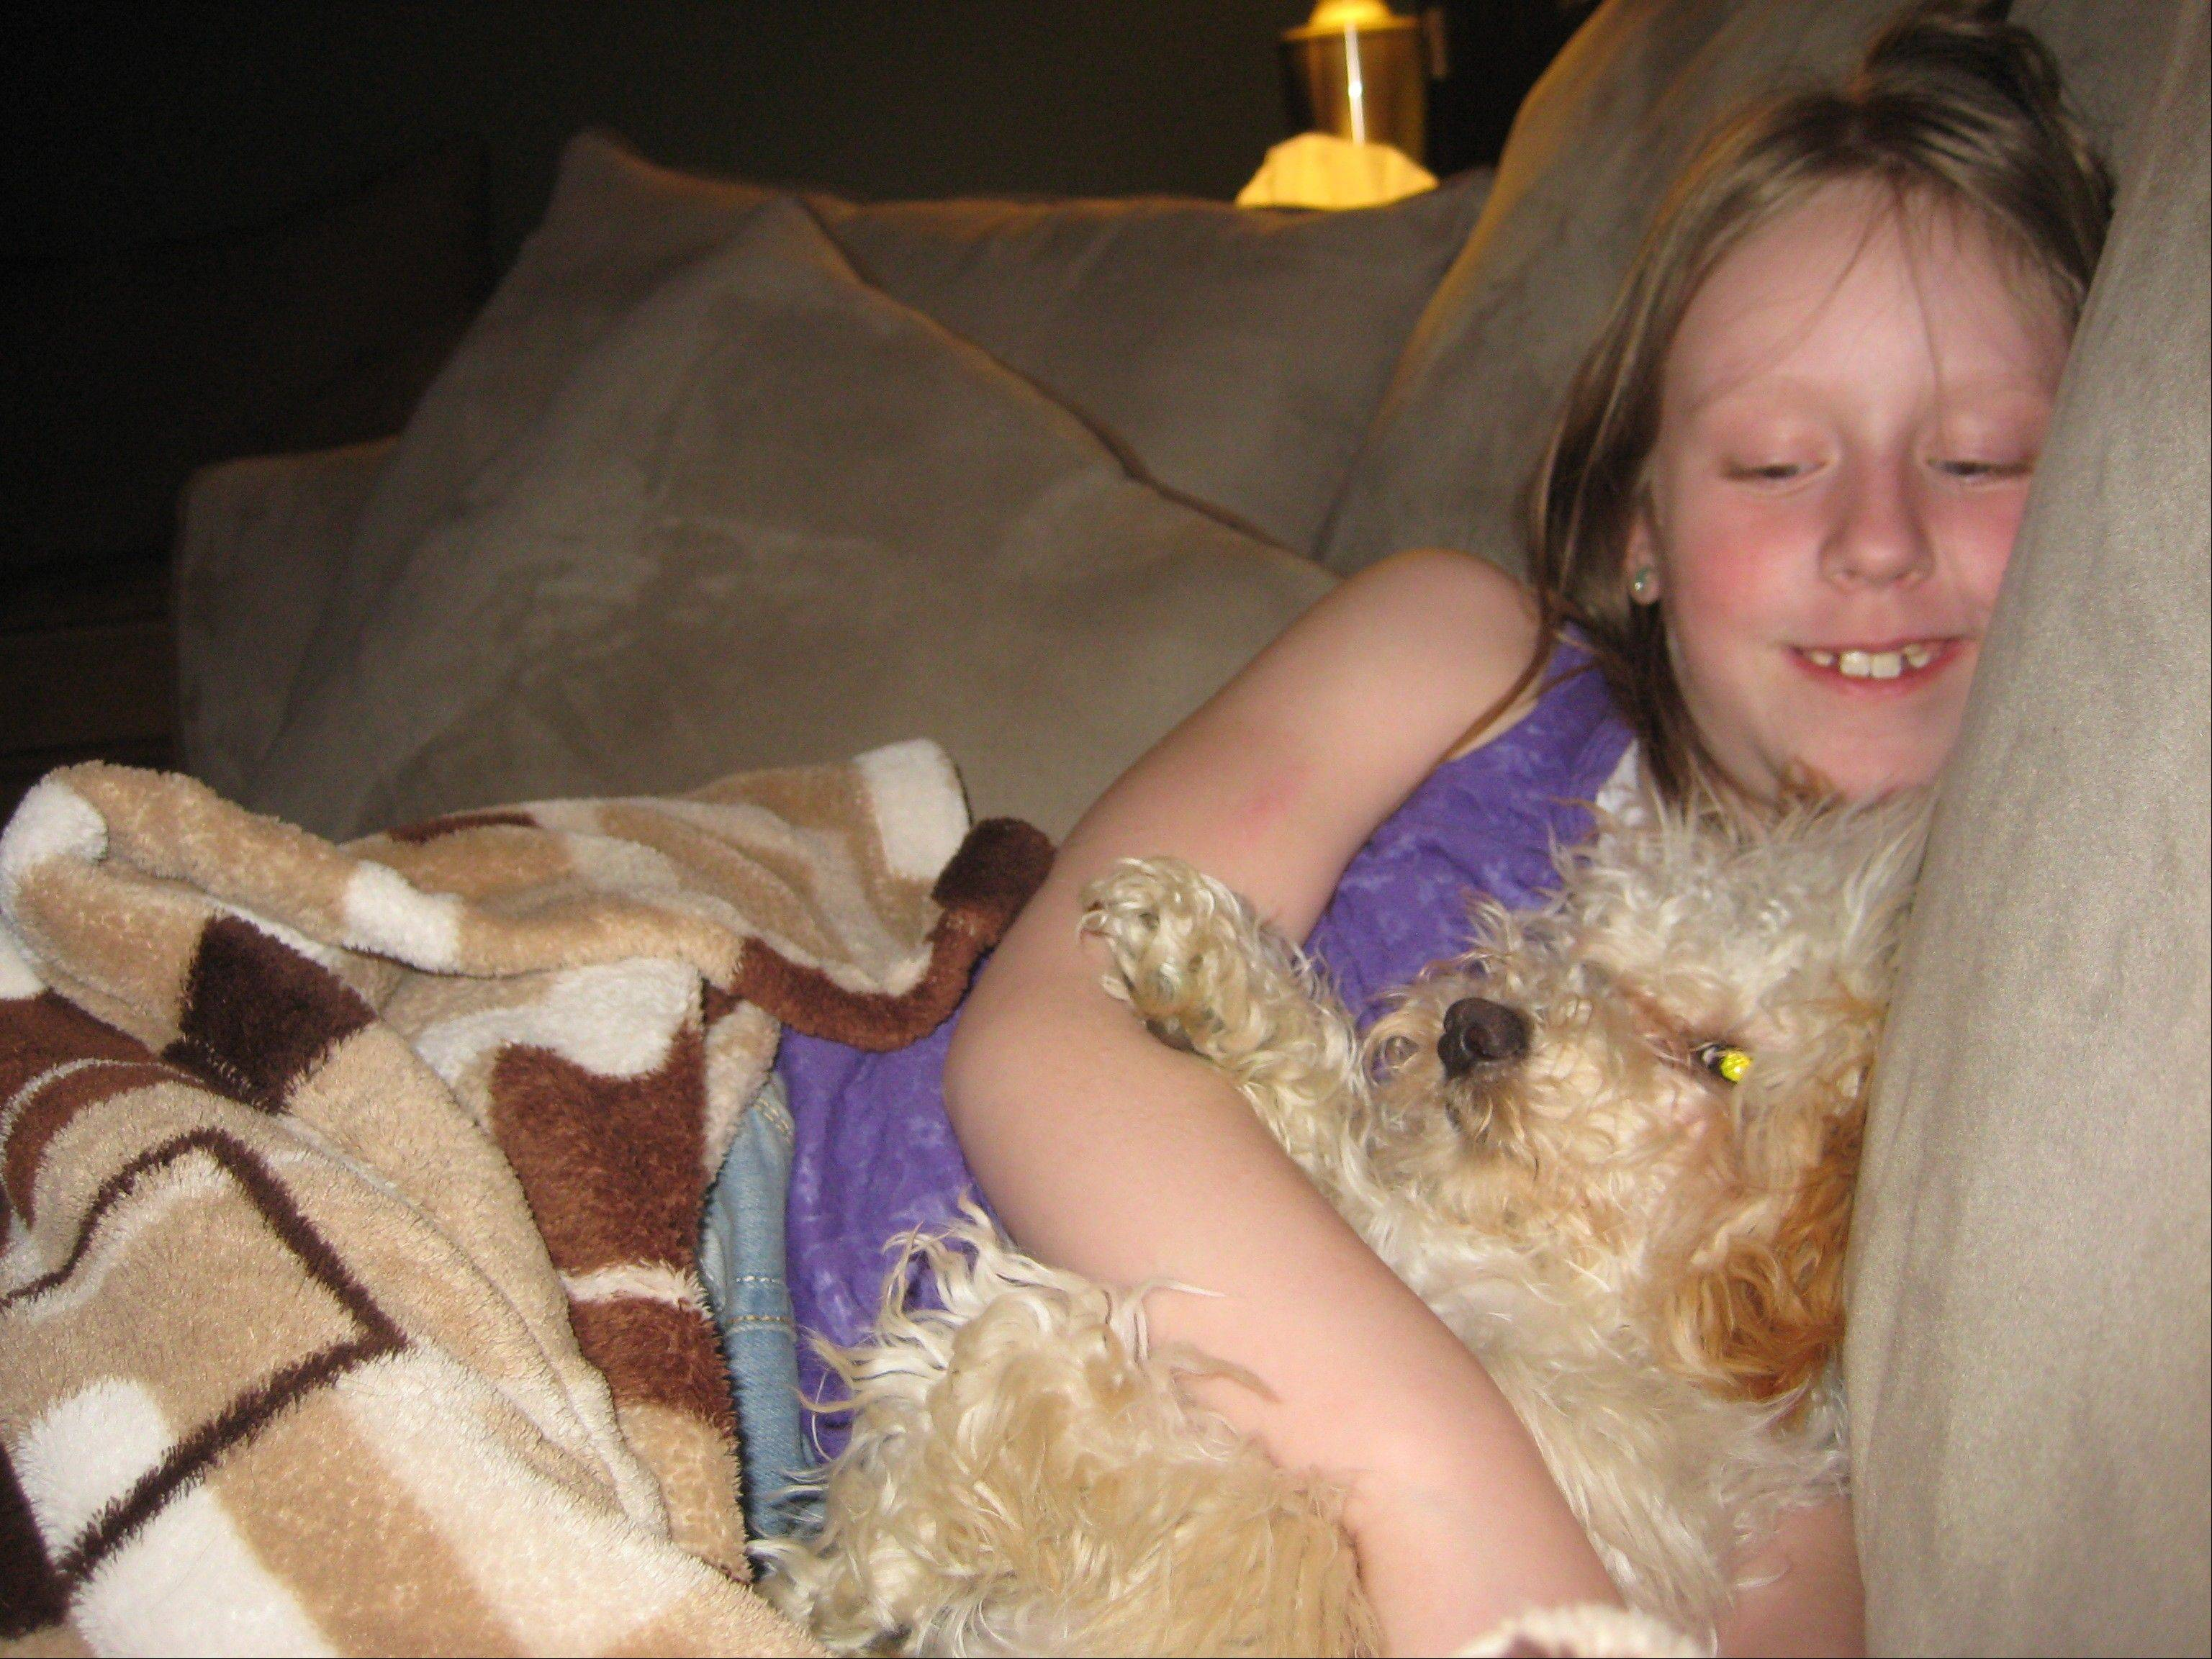 Delaney Ketter, 11, was with her family's dog, Daisy, when the 3-year-old bichon frise-poodle mix was attacked and killed by a pit bull in Villa Park.